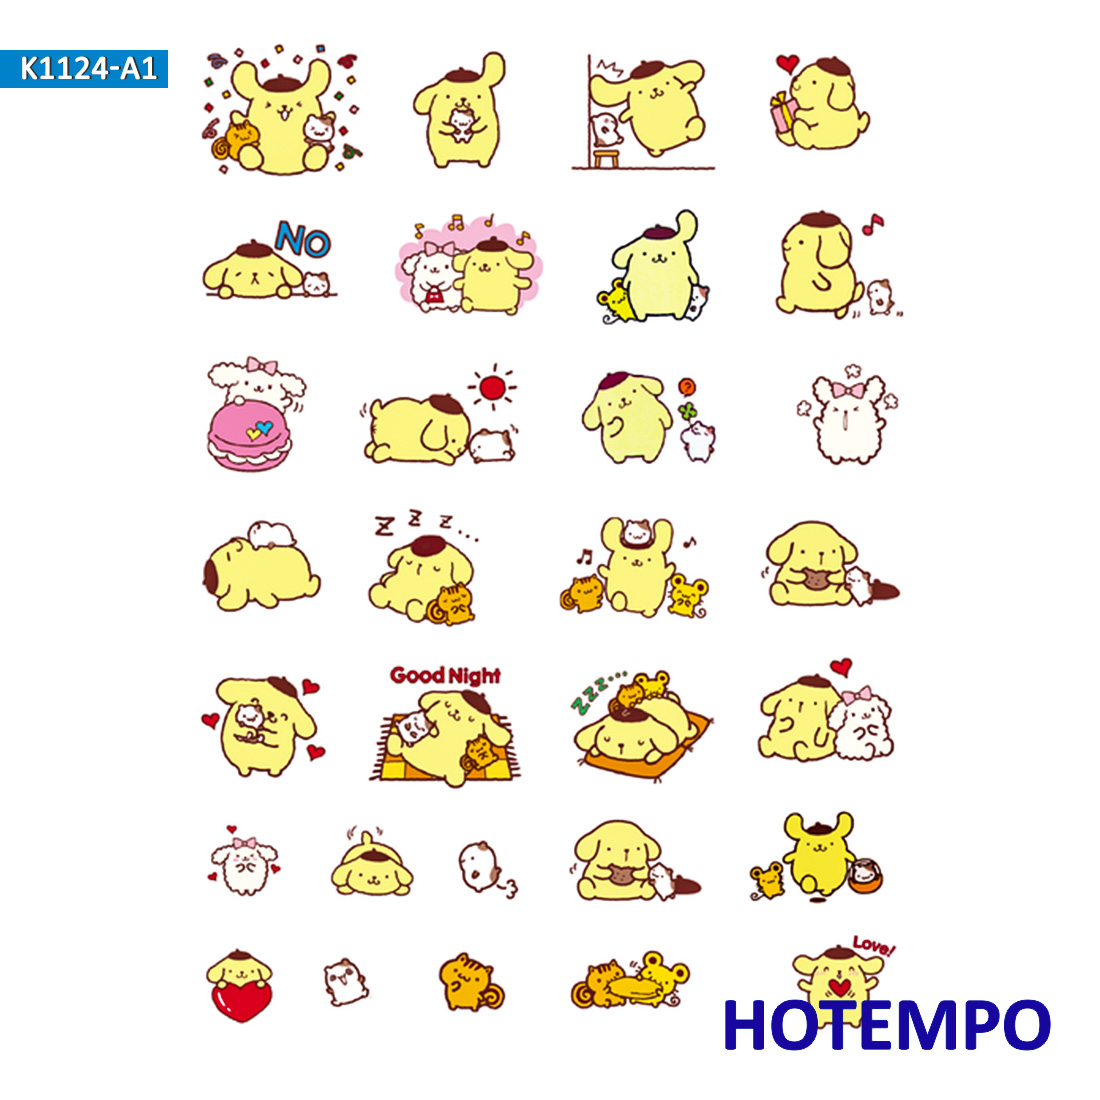 Pompom Purin Sanrio Stickers For Girl Children Kids Gift DIY Letter Diary Scrapbooking Stationery Pegatinas Decal Stickers